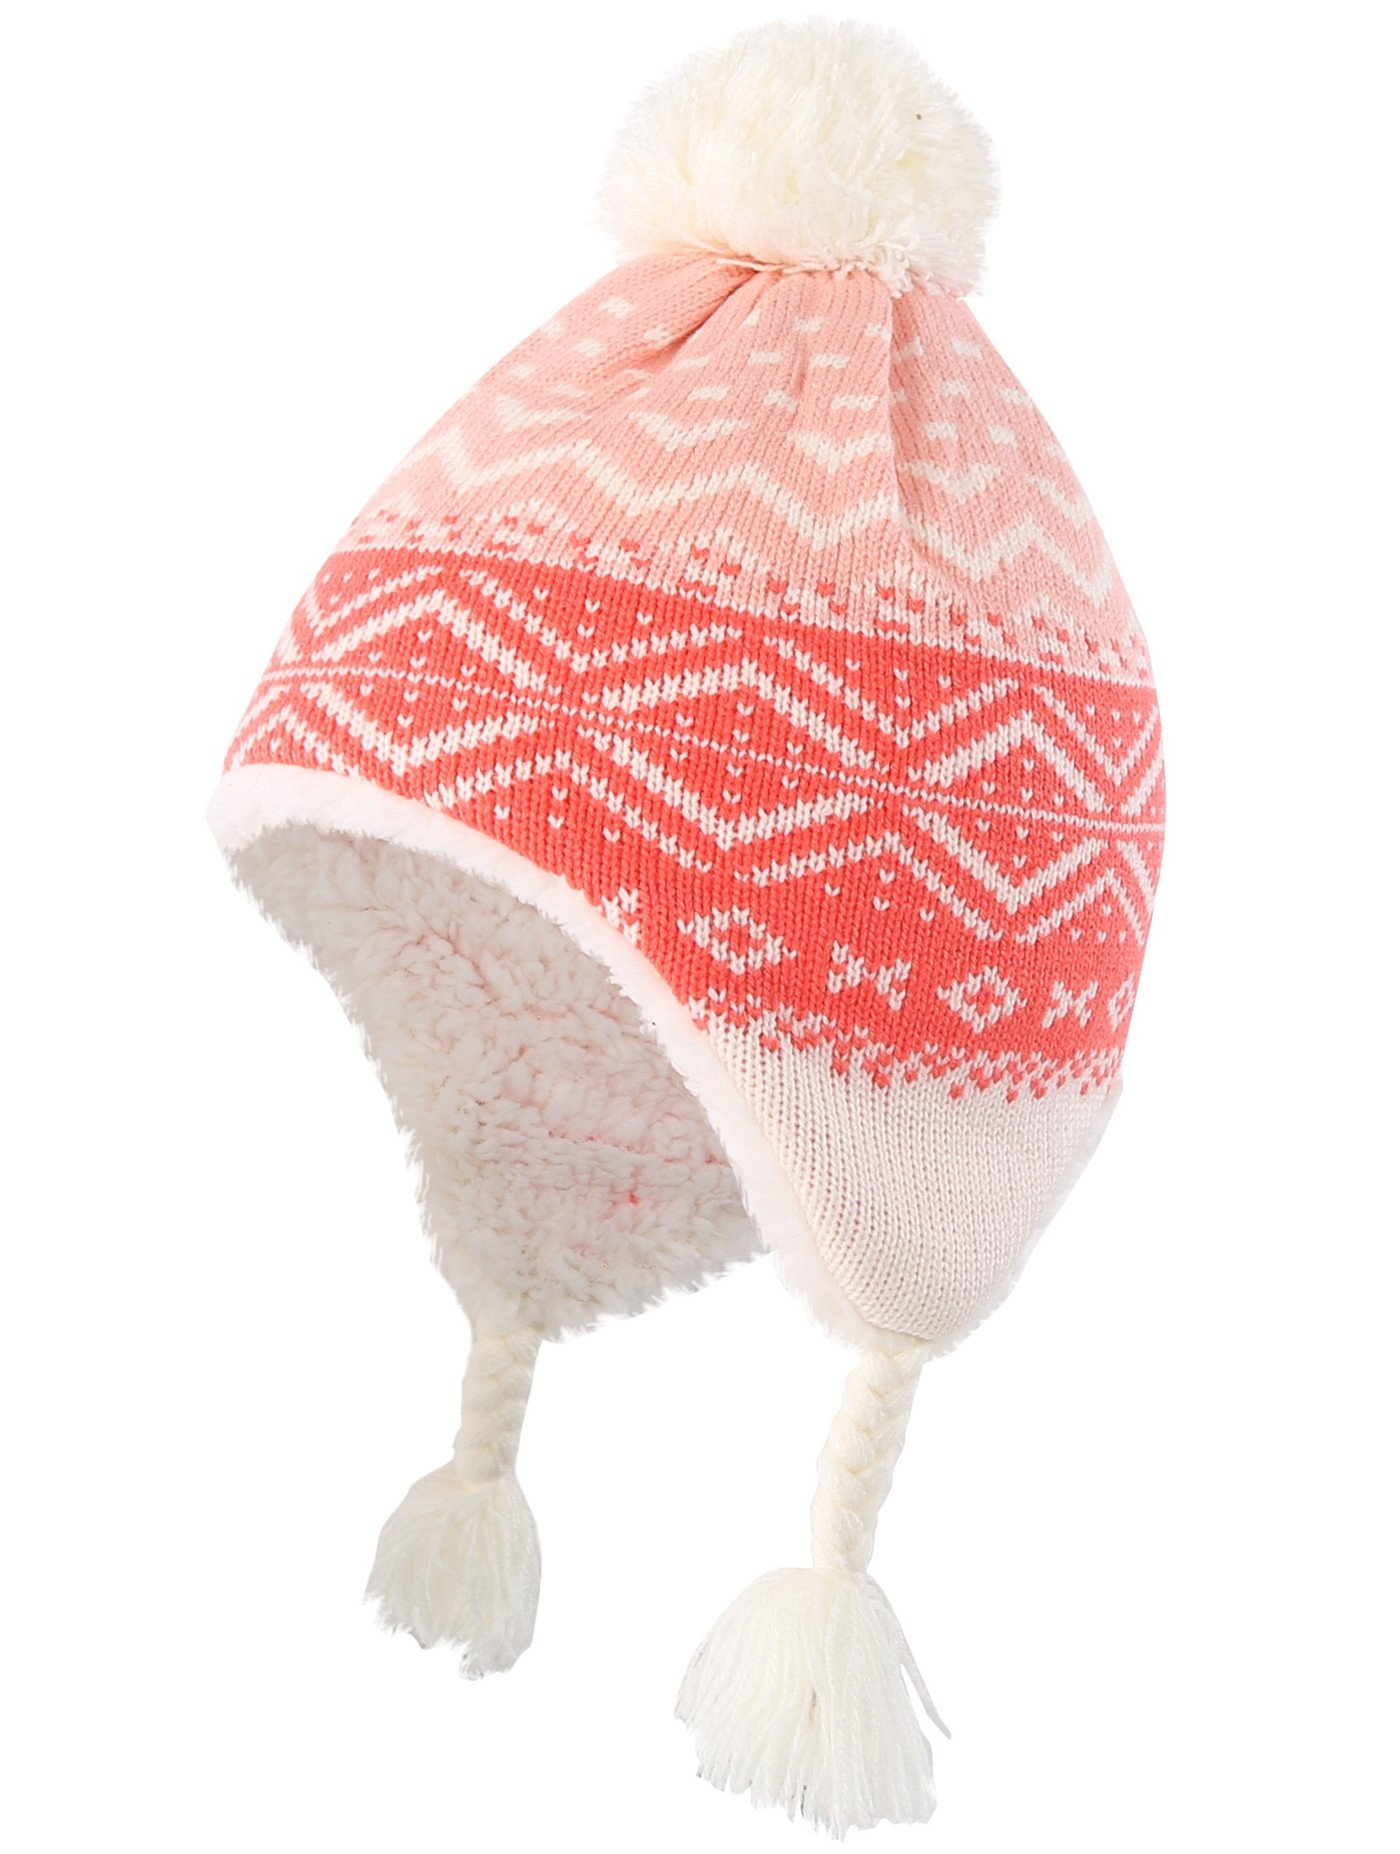 Connectyle Toddler Girls Knit Kids Hat Sherpa Lined Beanie Hat with Earflap Warm Winter Hats Beanies Skull Cap,Pink,L:1T-2T(18.5inches-19.3inchesHead Girth)